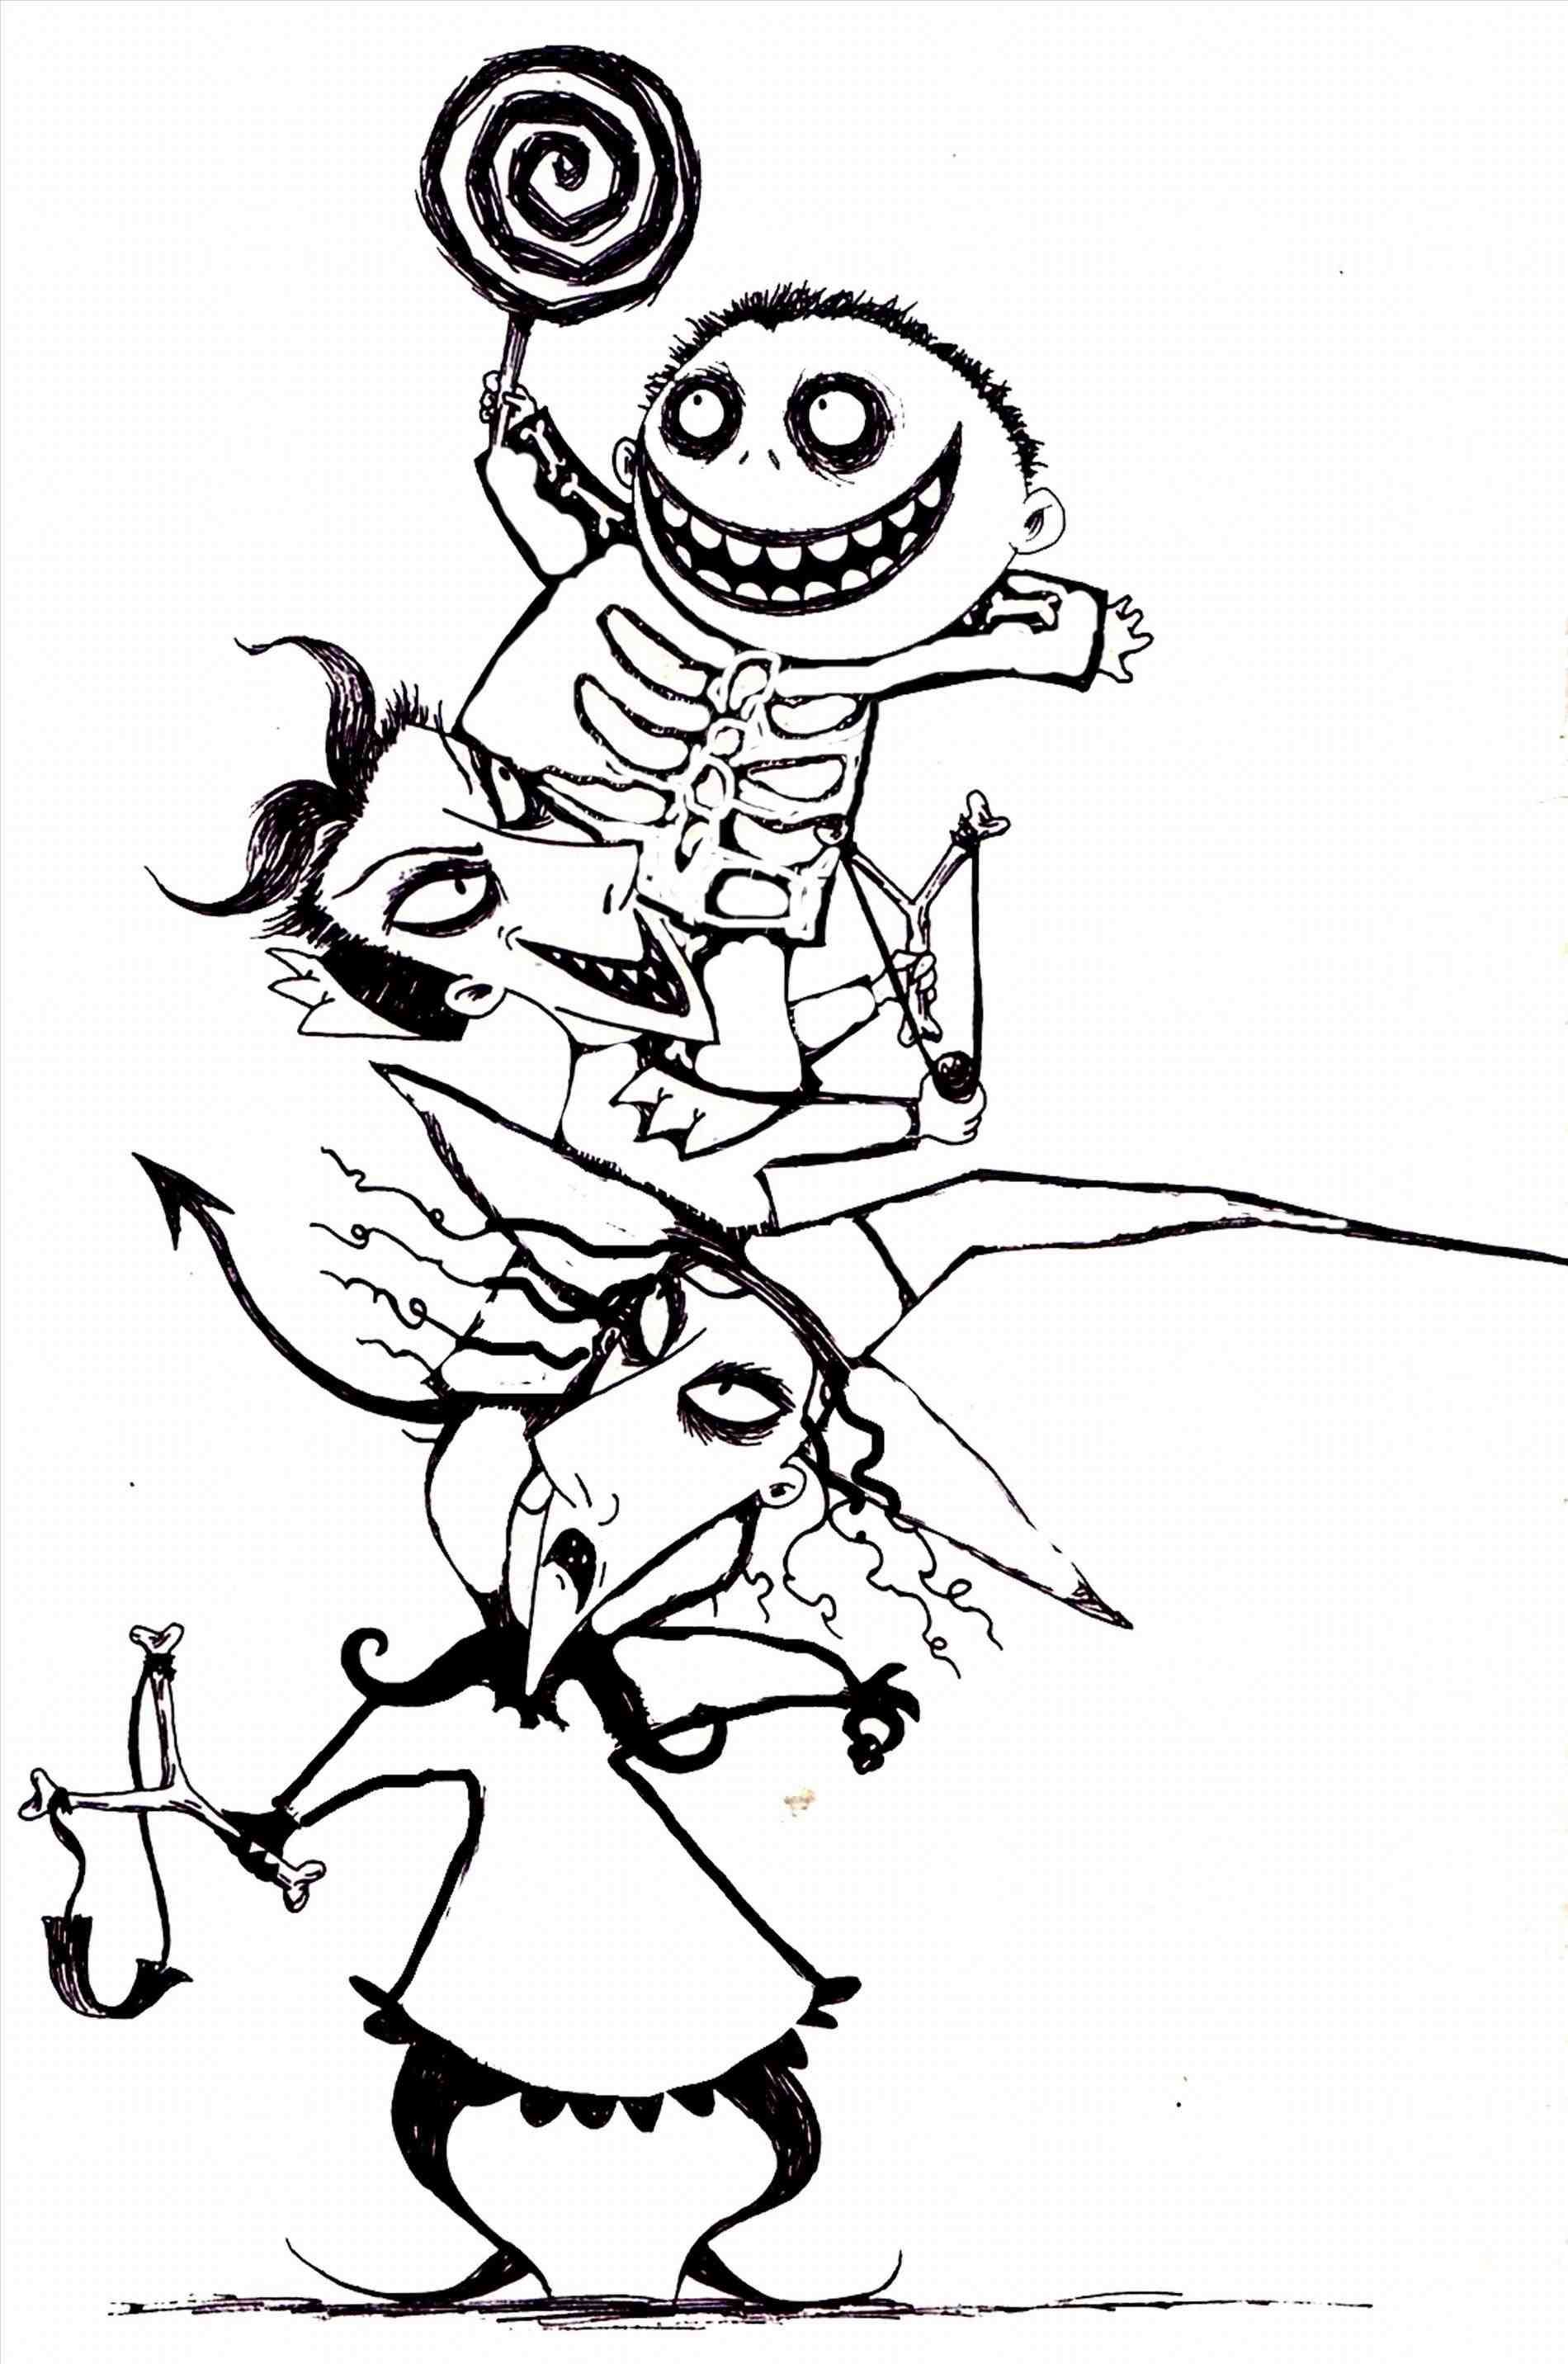 New Post nightmare before christmas zero drawings | Halloween in ...